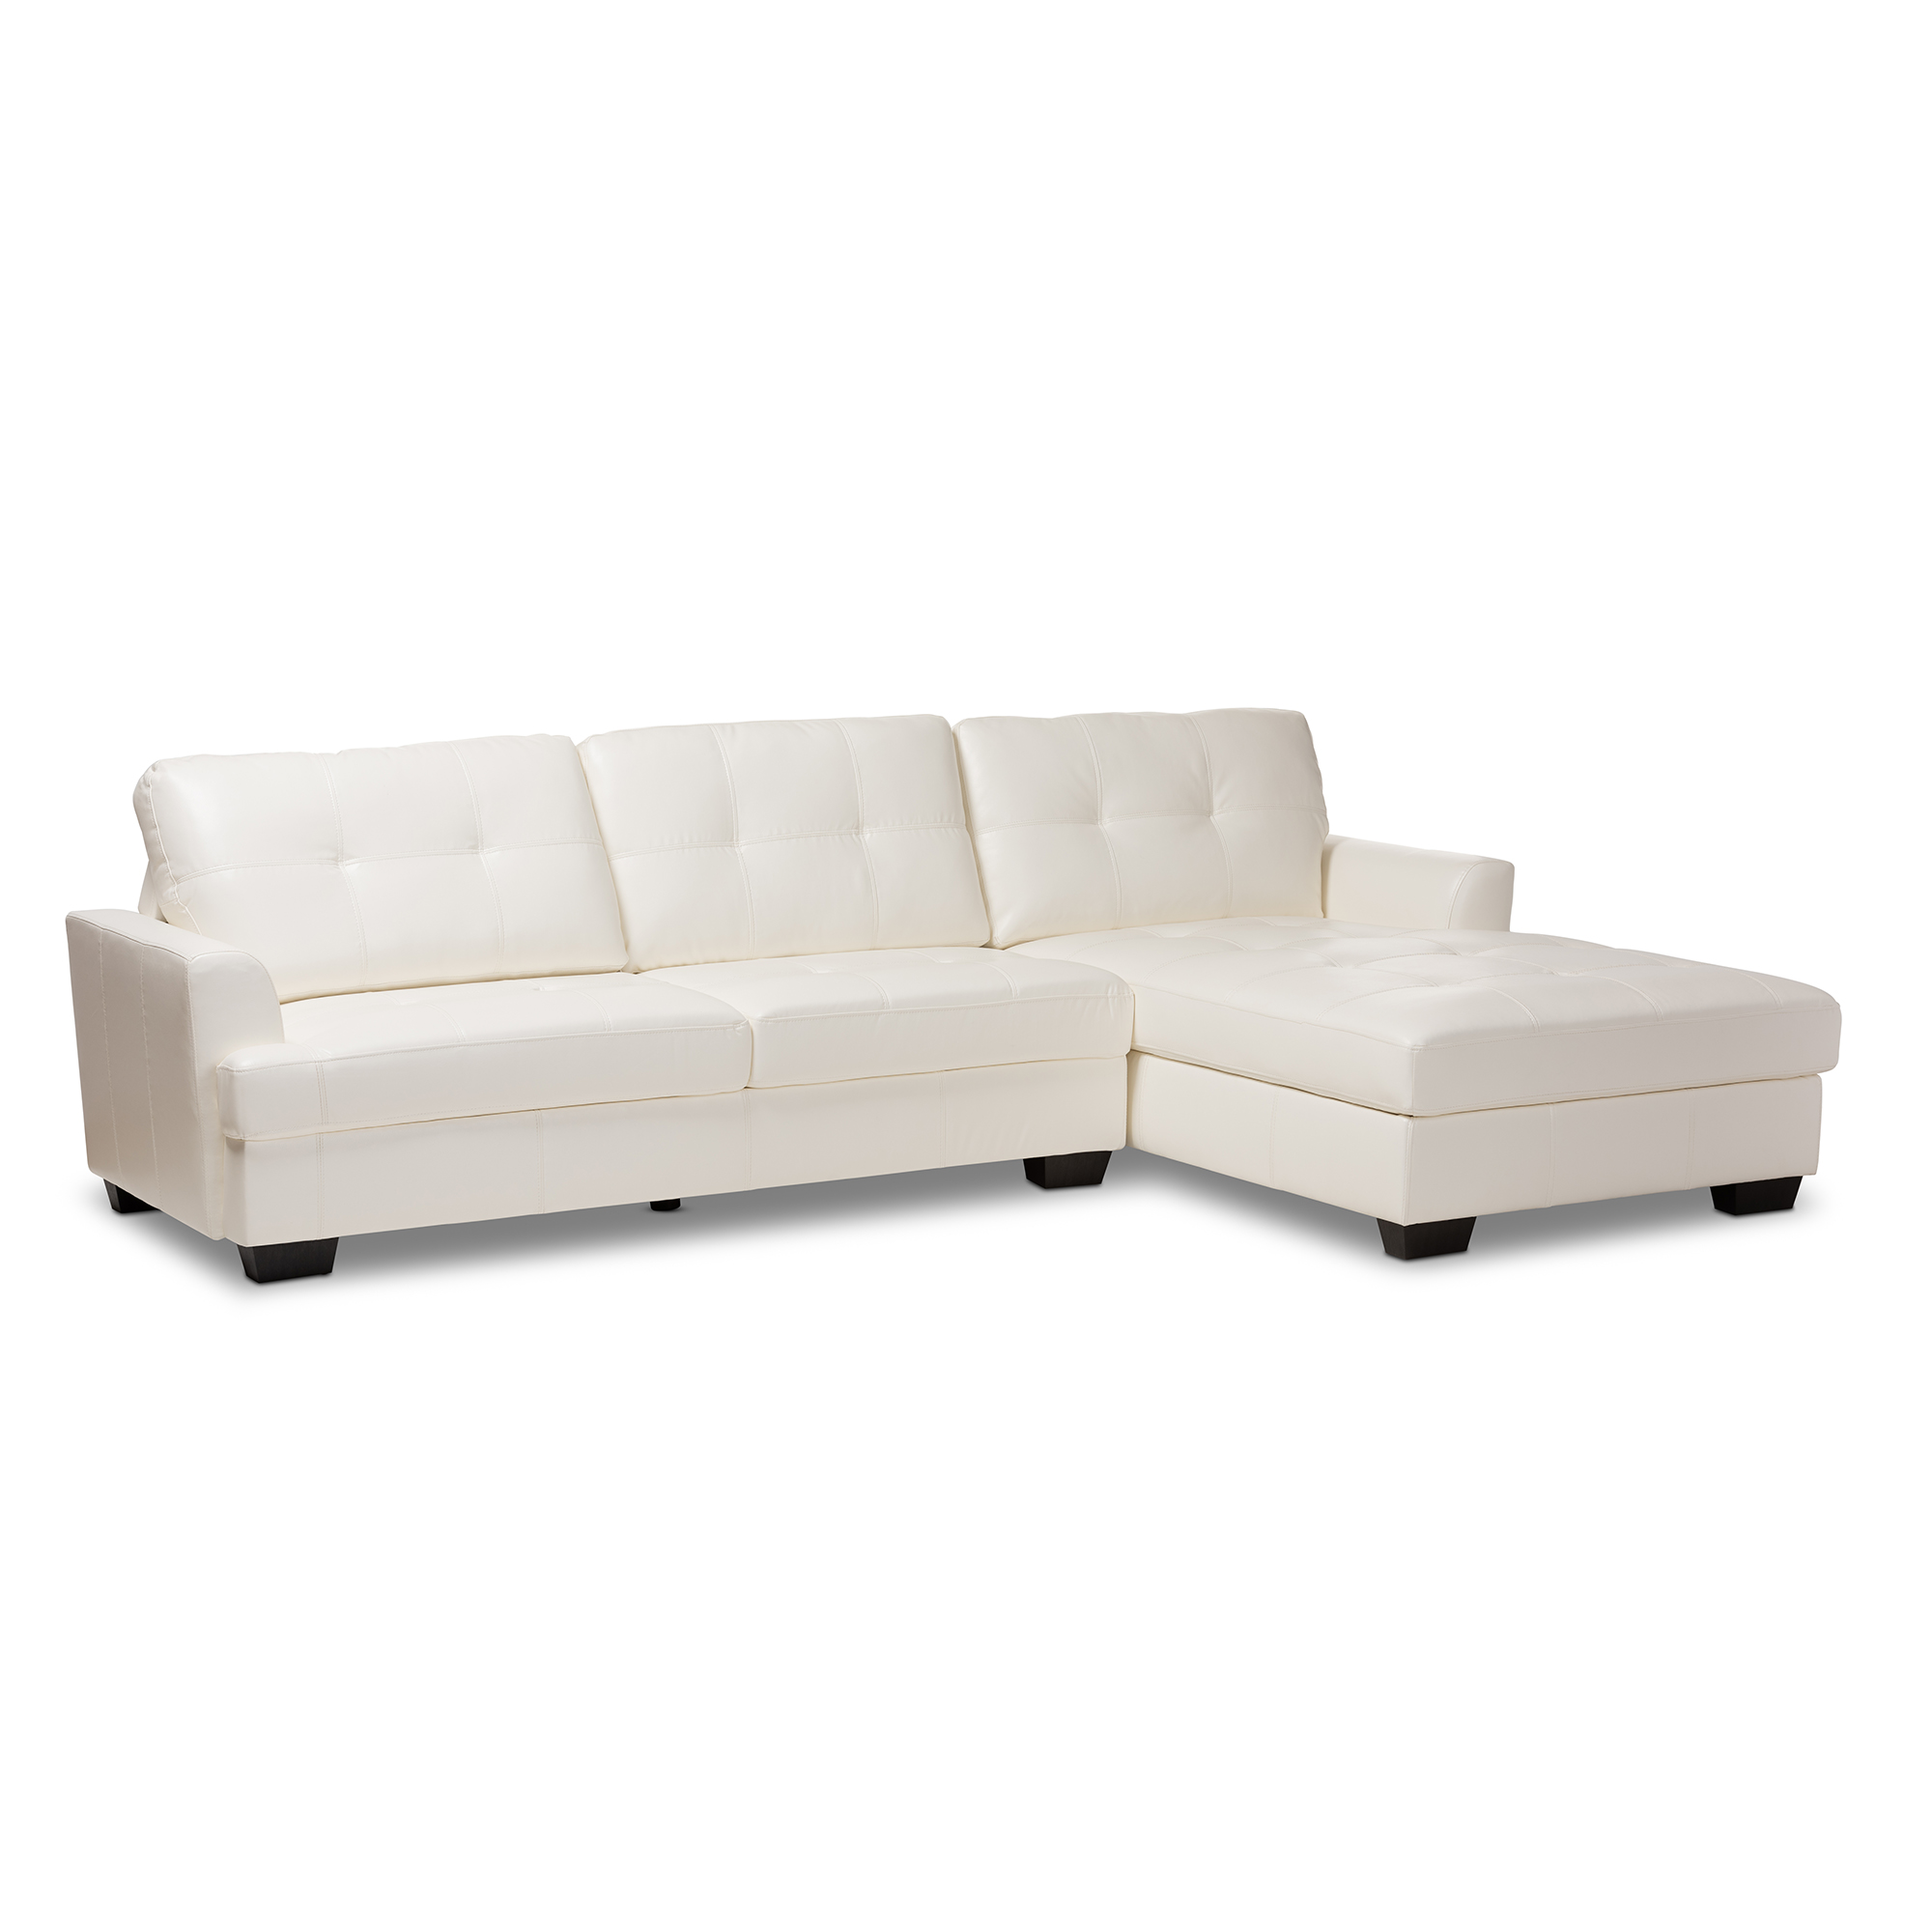 Enfield Modern White Leather Sofa: Baxton Studio Adalynn Modern And Contemporary White Faux